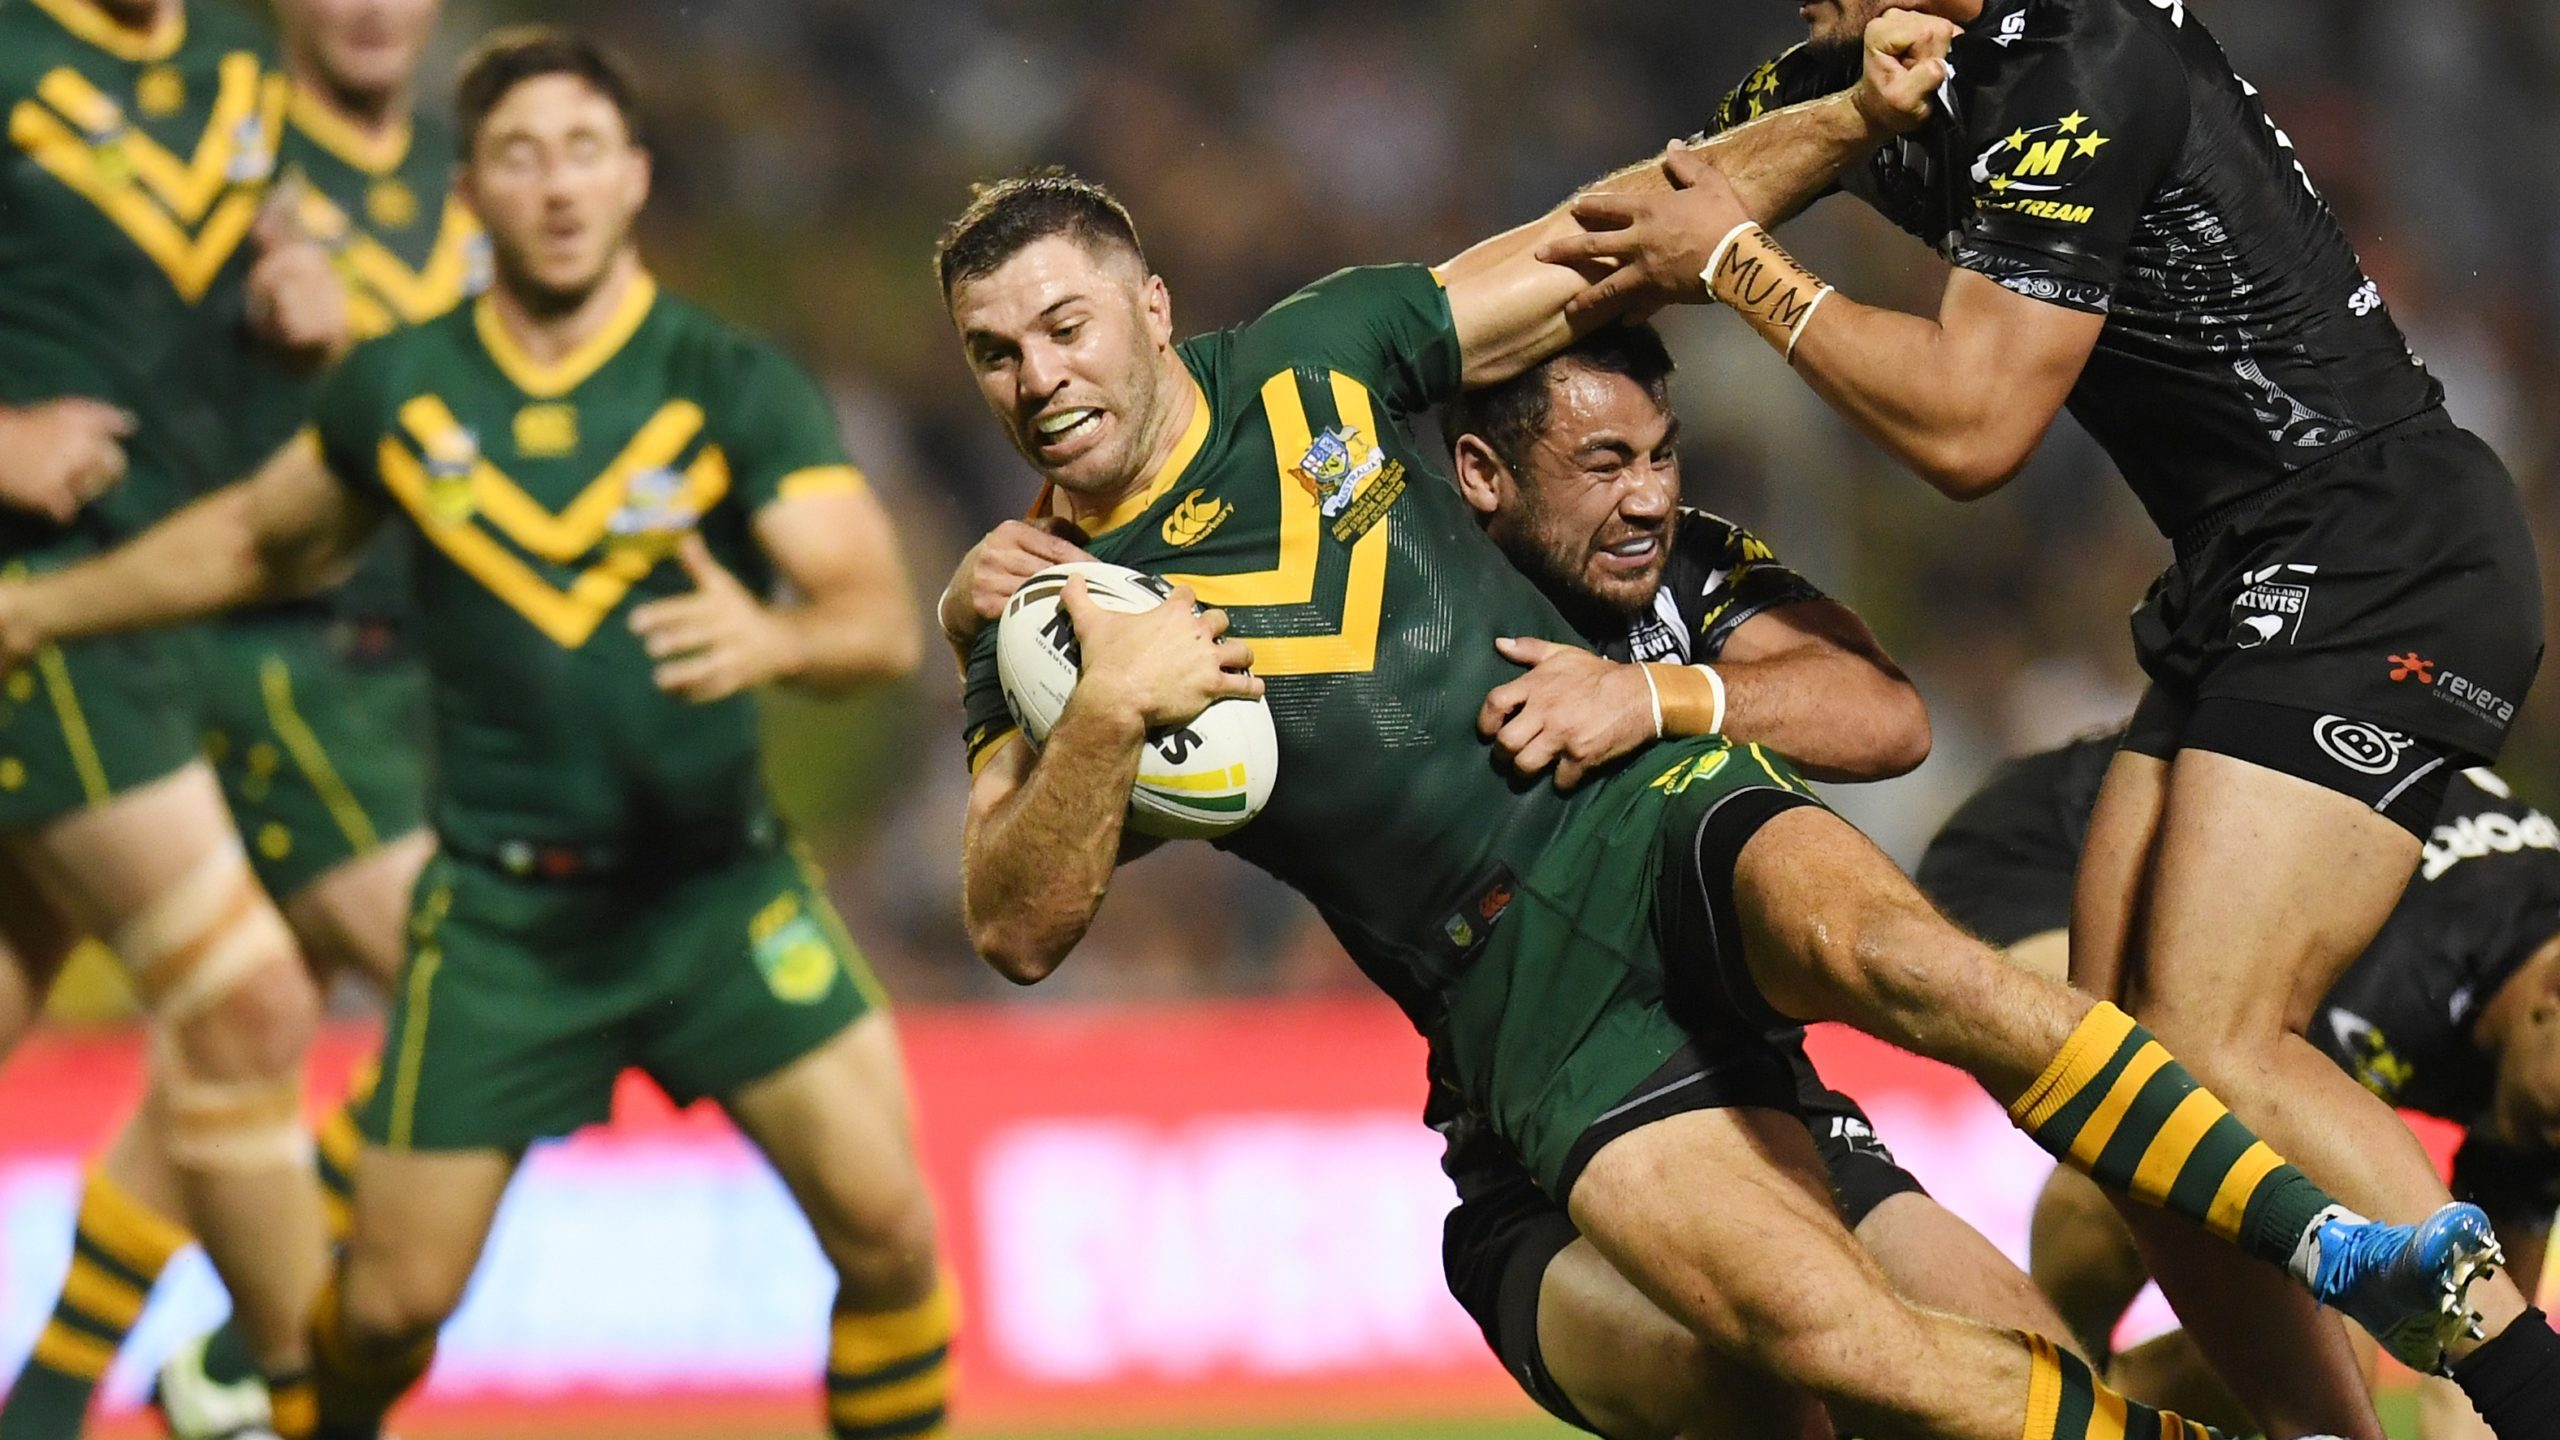 Australia and New Zealand Discuss Booting South Africa from Super Rugby - Newslibre